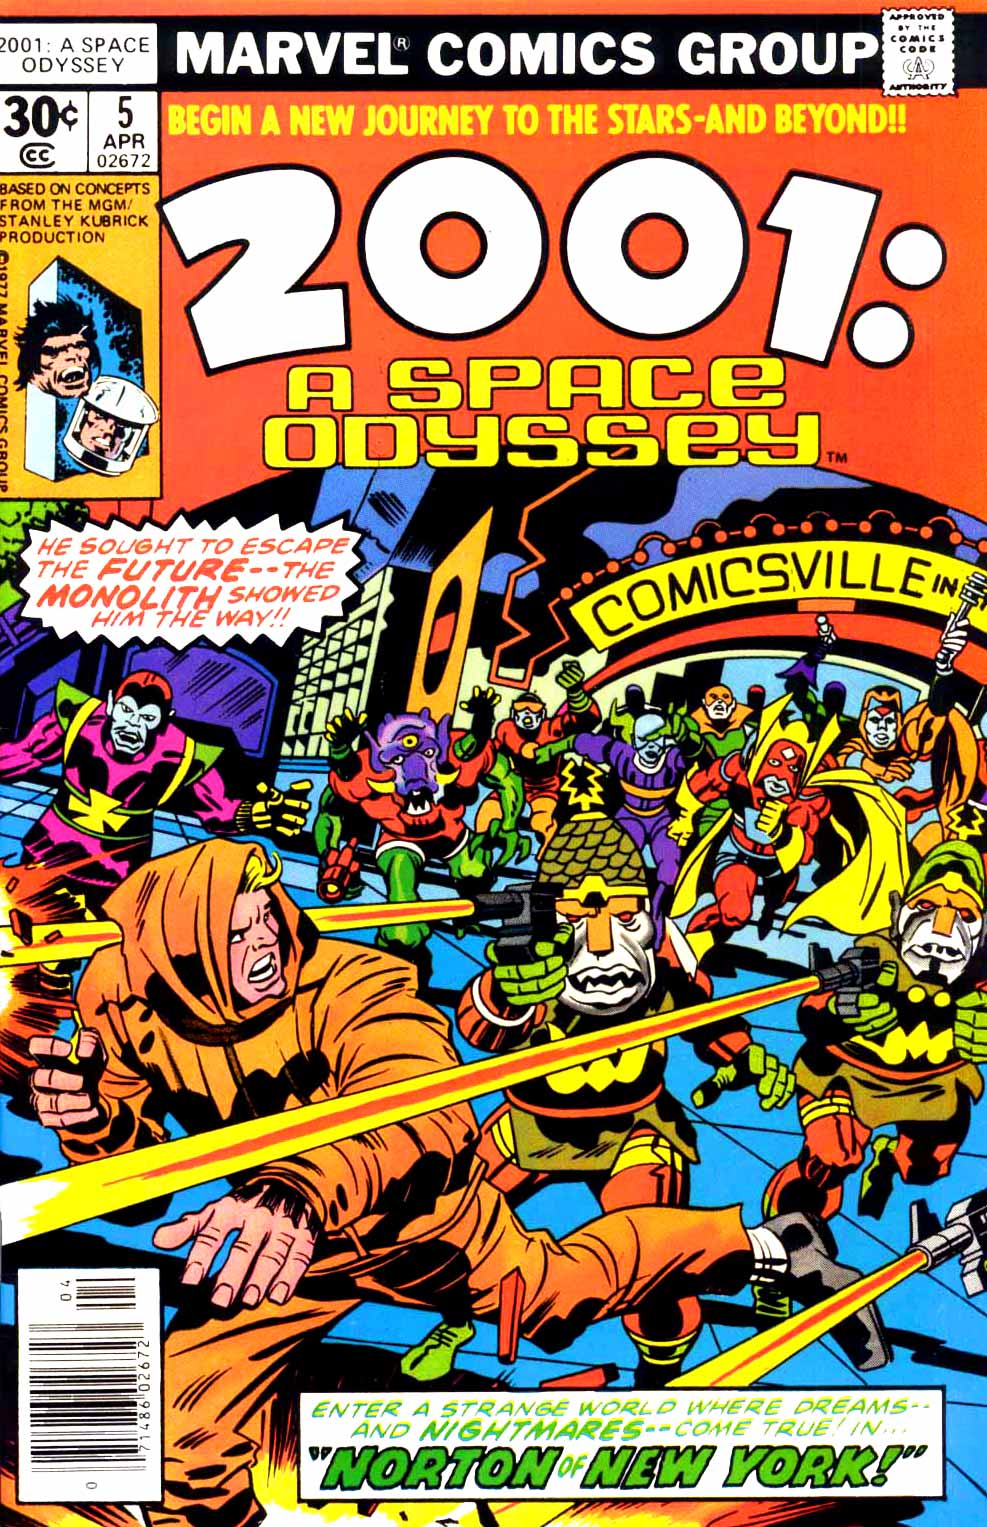 2001: A Space Odyssey (1976) #5, cover penciled by Jack Kirby & inked by Mike Royer.